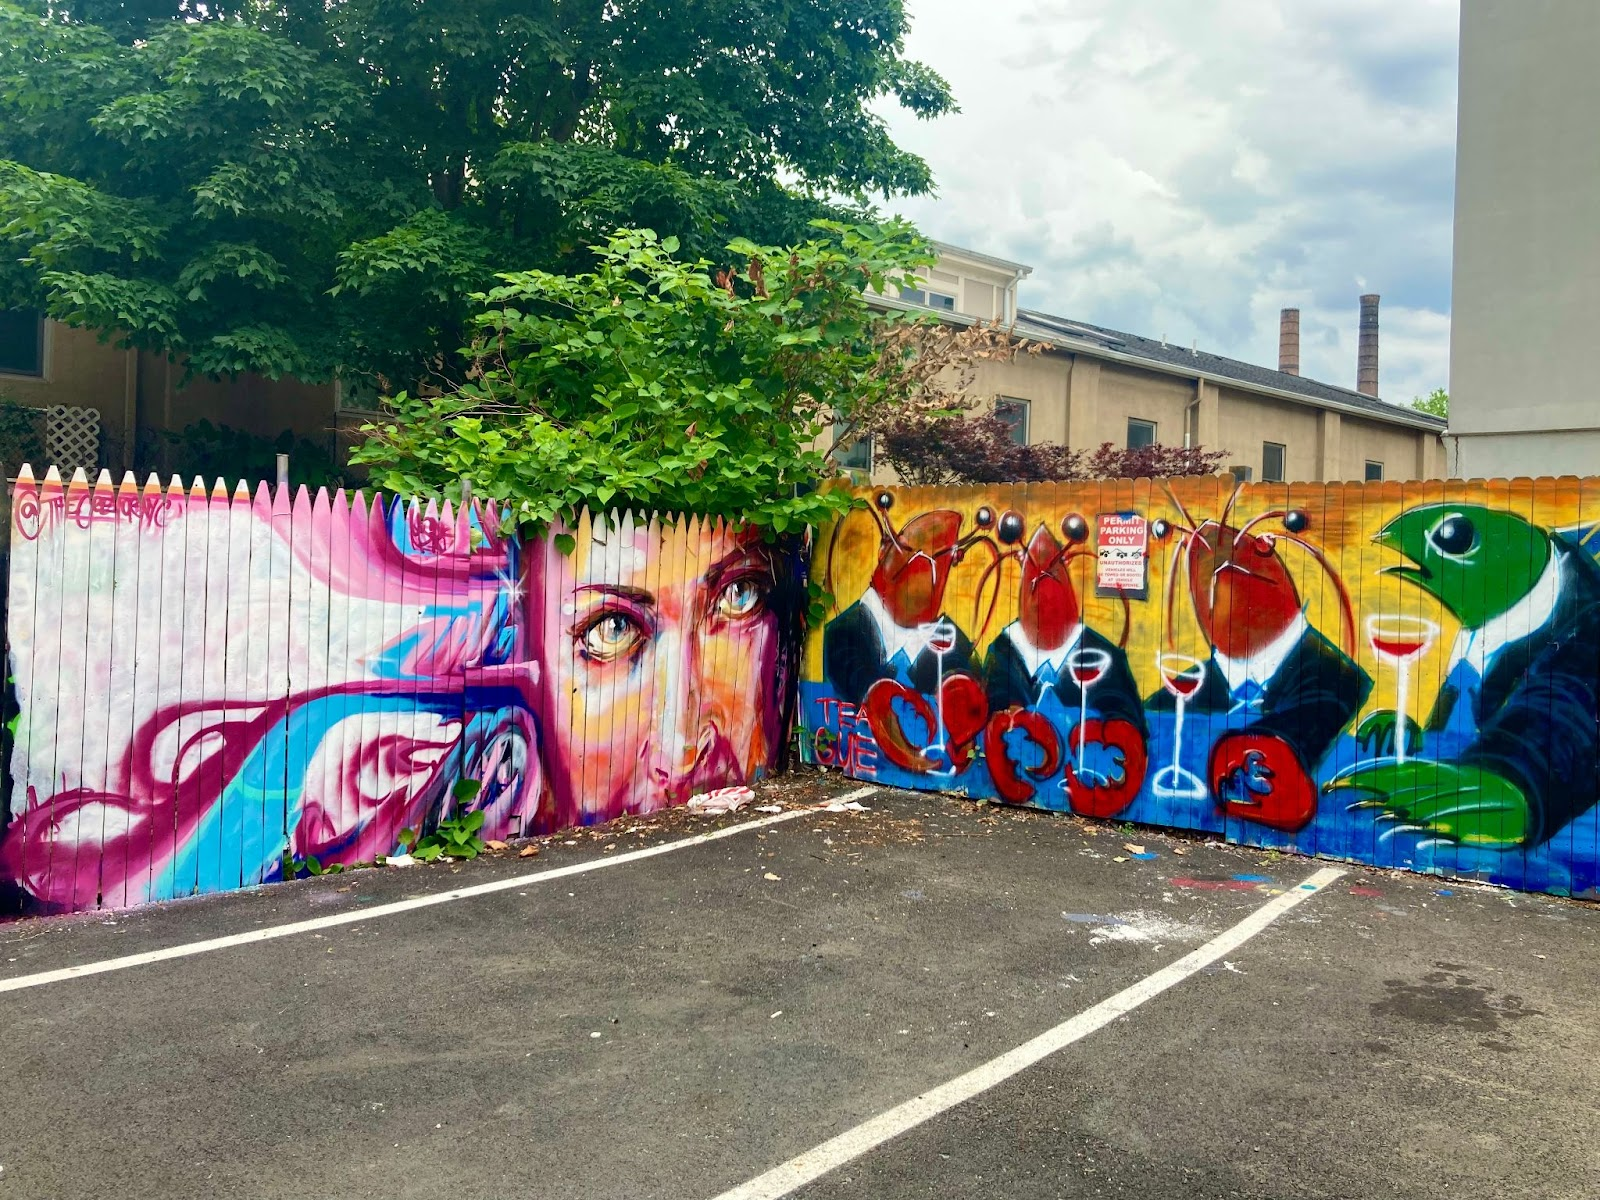 Inside Look at Jersey City's Burgeoning Street Art. Works by Manuel Alejandro Pulla and Teague Smith at this public art playground organized by JC Hundreds Mural Co. First St. & Coles St. Photo by Vittoria Benzine.